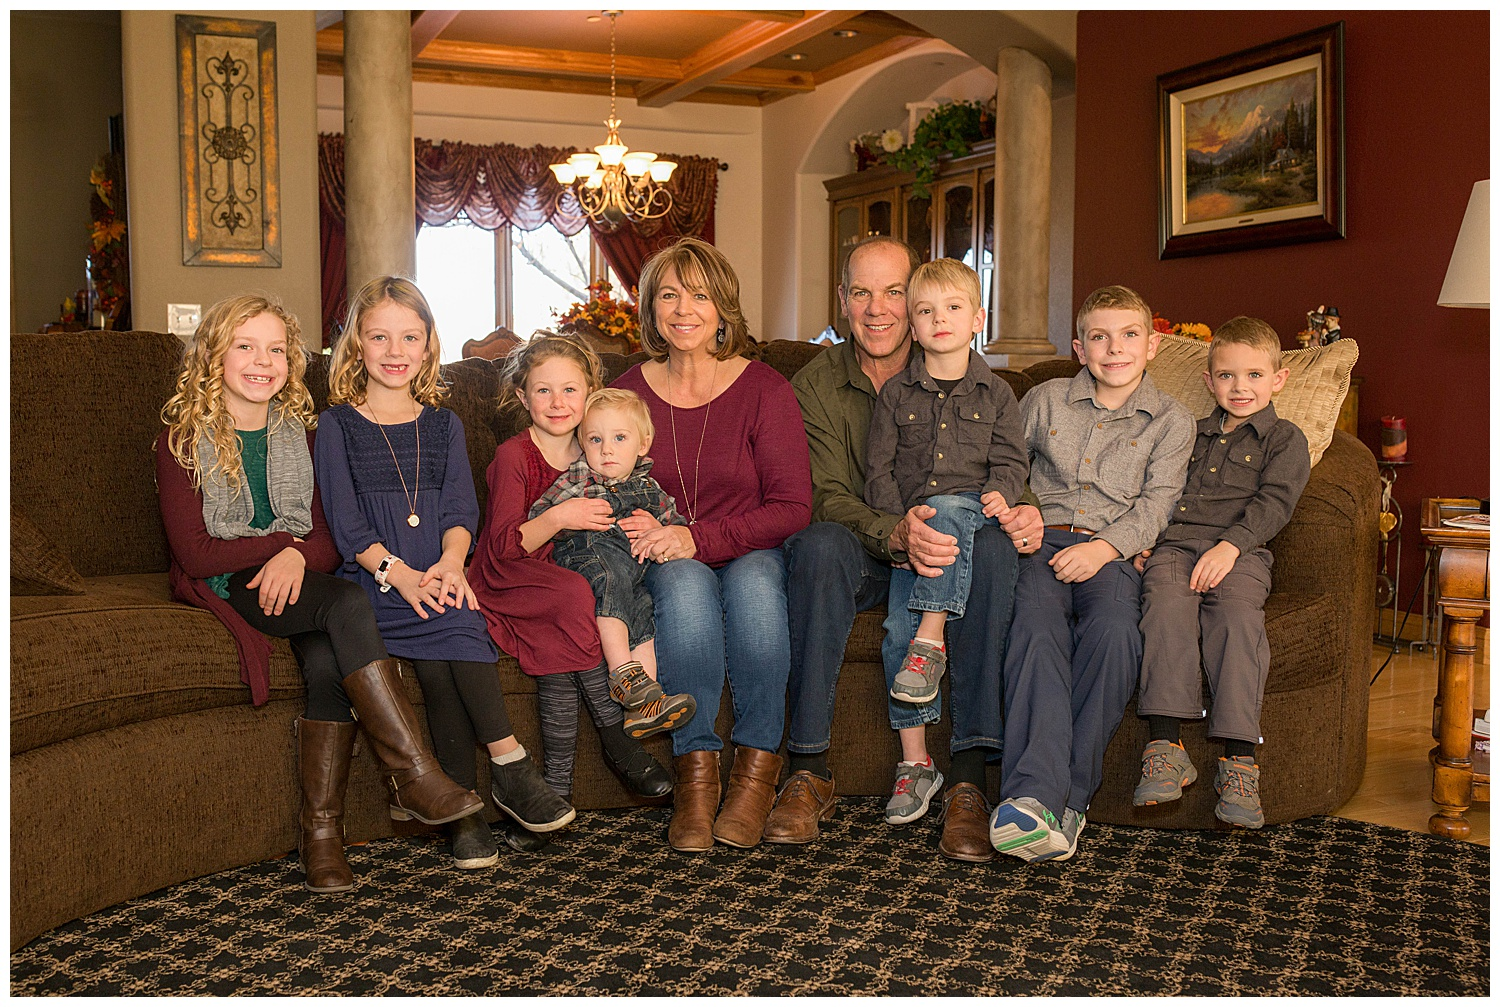 grandparents-grandkids-family-portraits-colorado-highlands-ranch.jpg